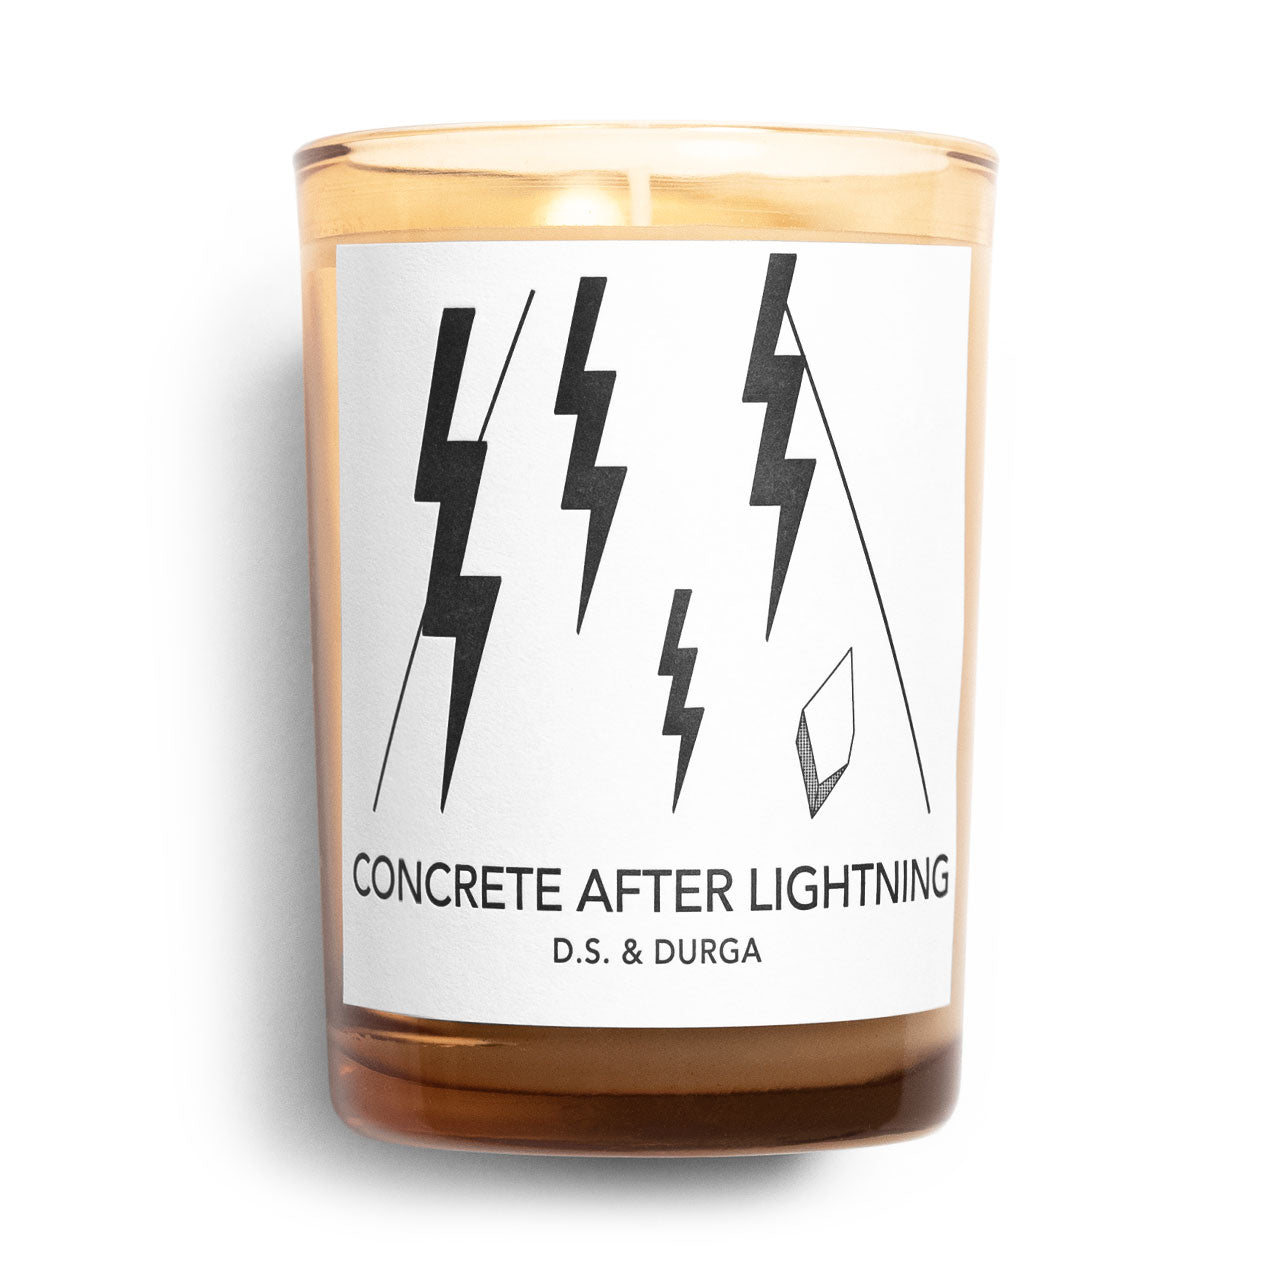 D.S. & Durga Concrete After Lightning Candle